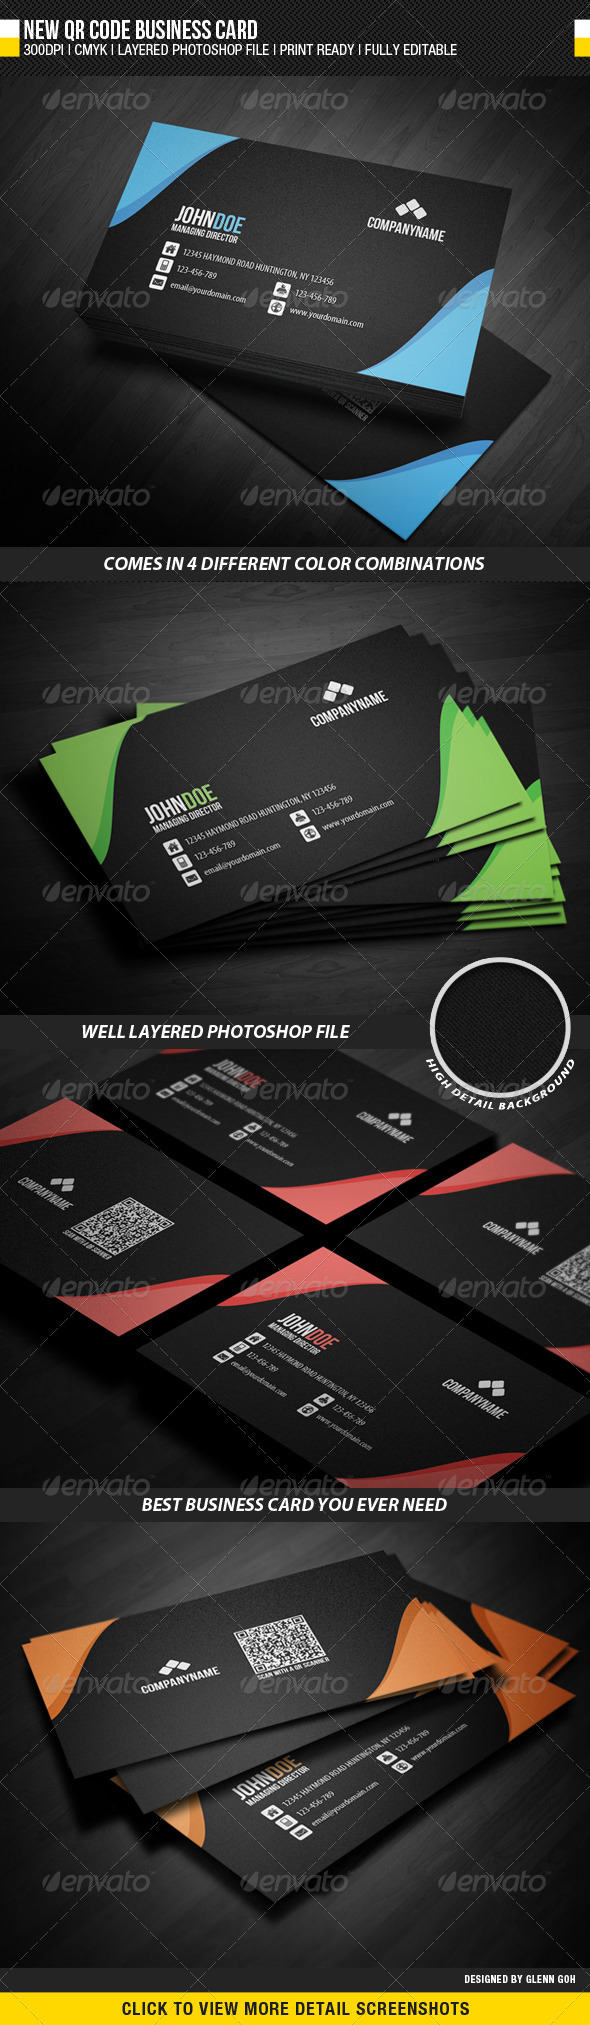 New QR Code Business Card - Corporate Business Cards